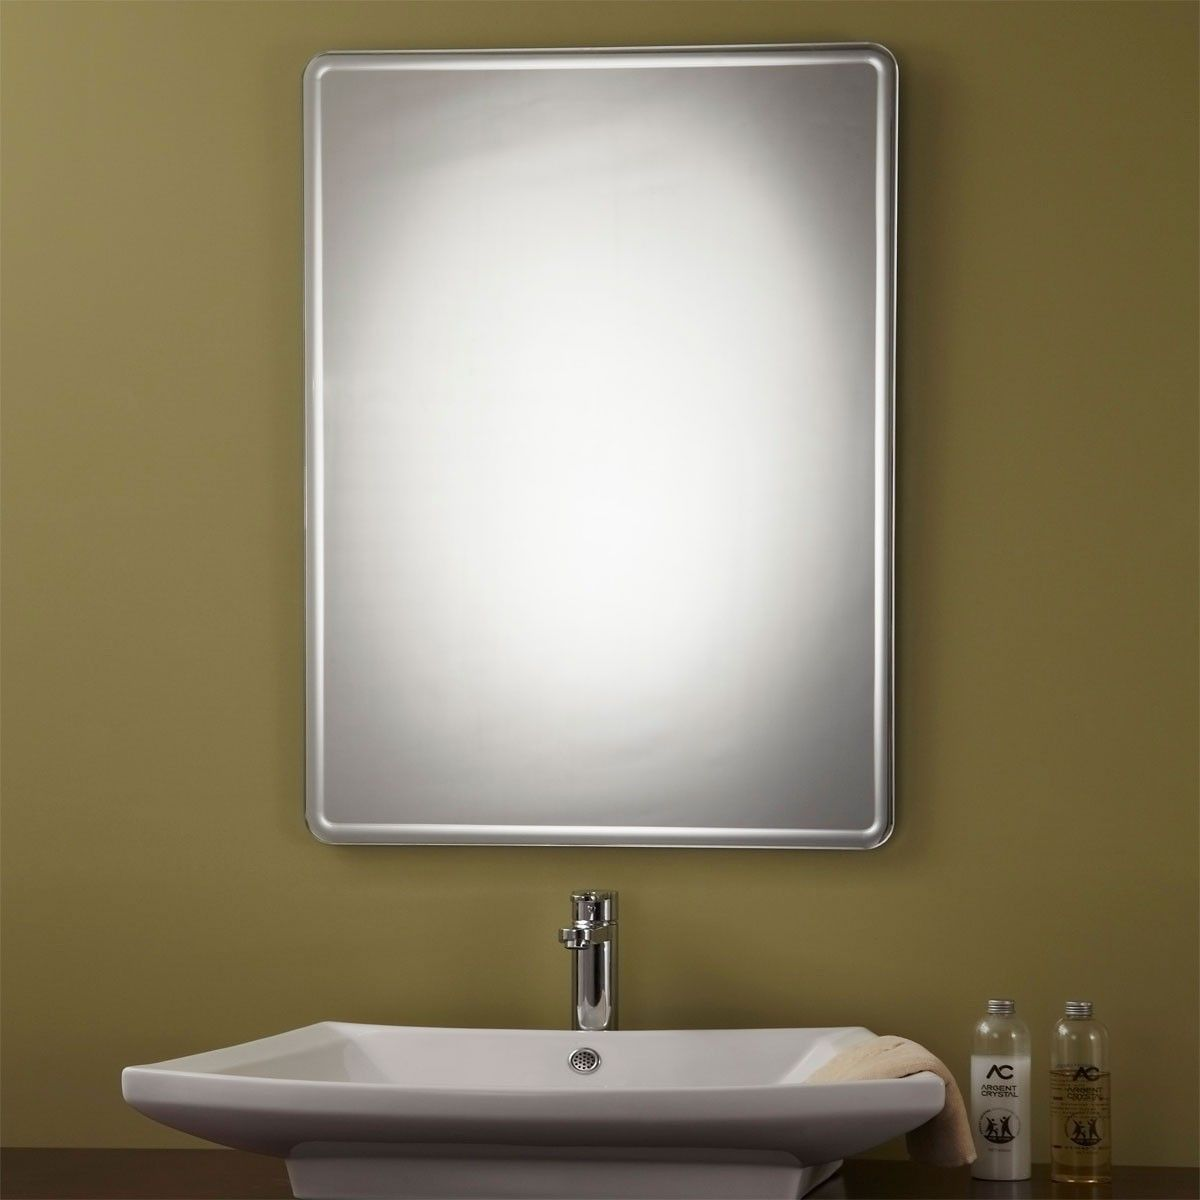 24 x 32 In Unframed Bathroom Silvered Mirror - Reversible and Round Polished Edge (YJ-169H)